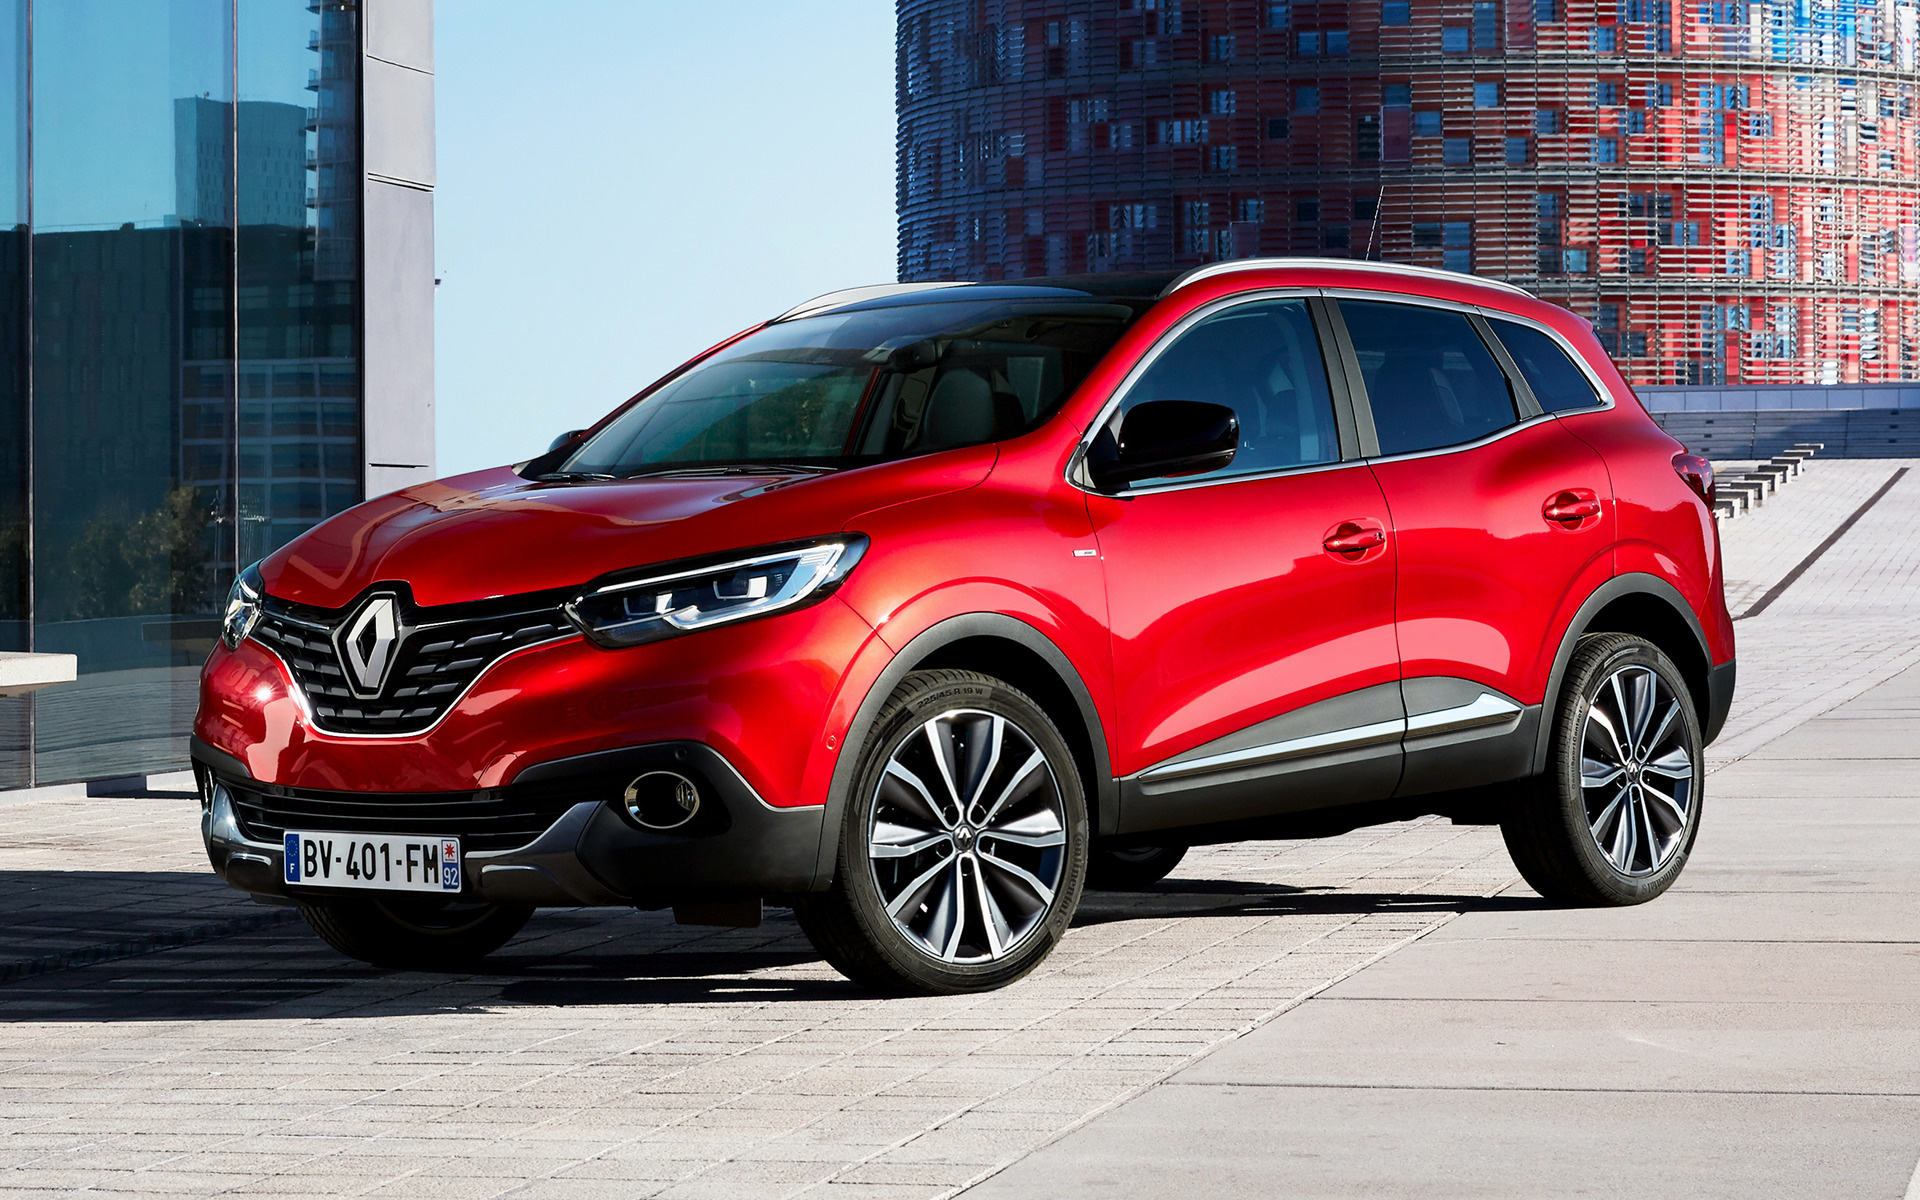 Renault Kadjar Bose (2015) Wallpapers and HD Images - Car ...